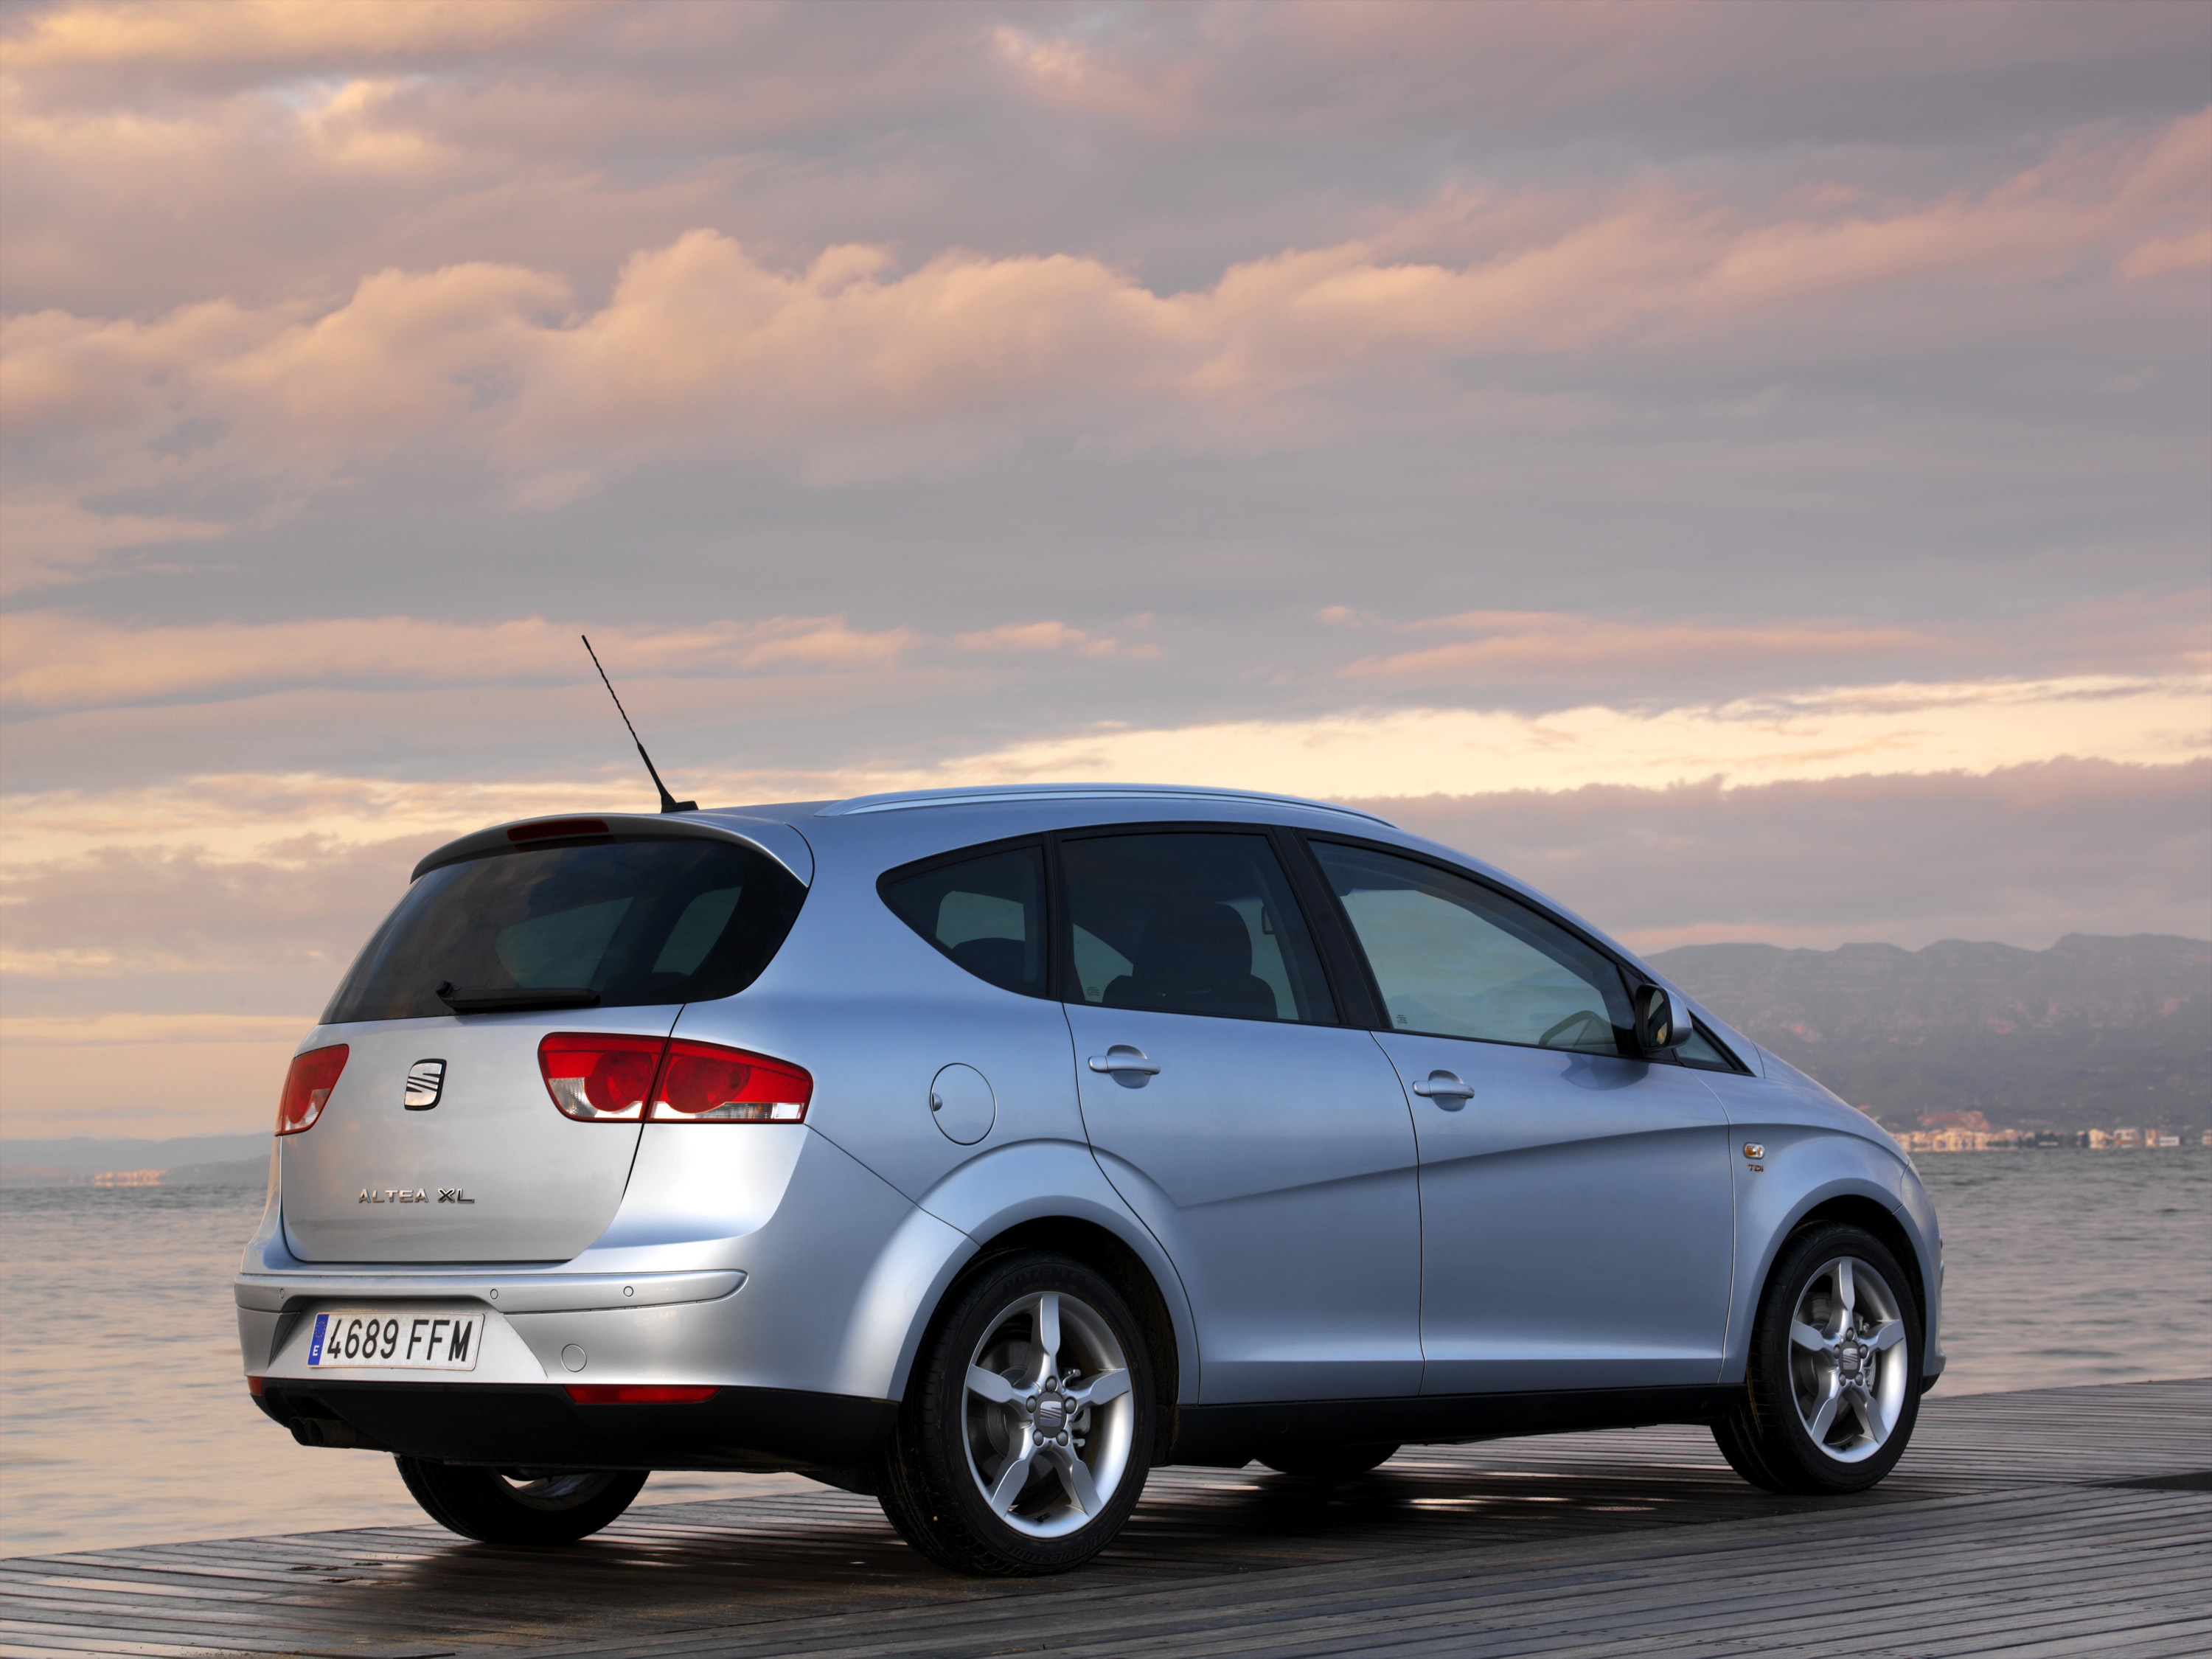 The Seat Altea Is One Of The Most Reliable Models On The Market